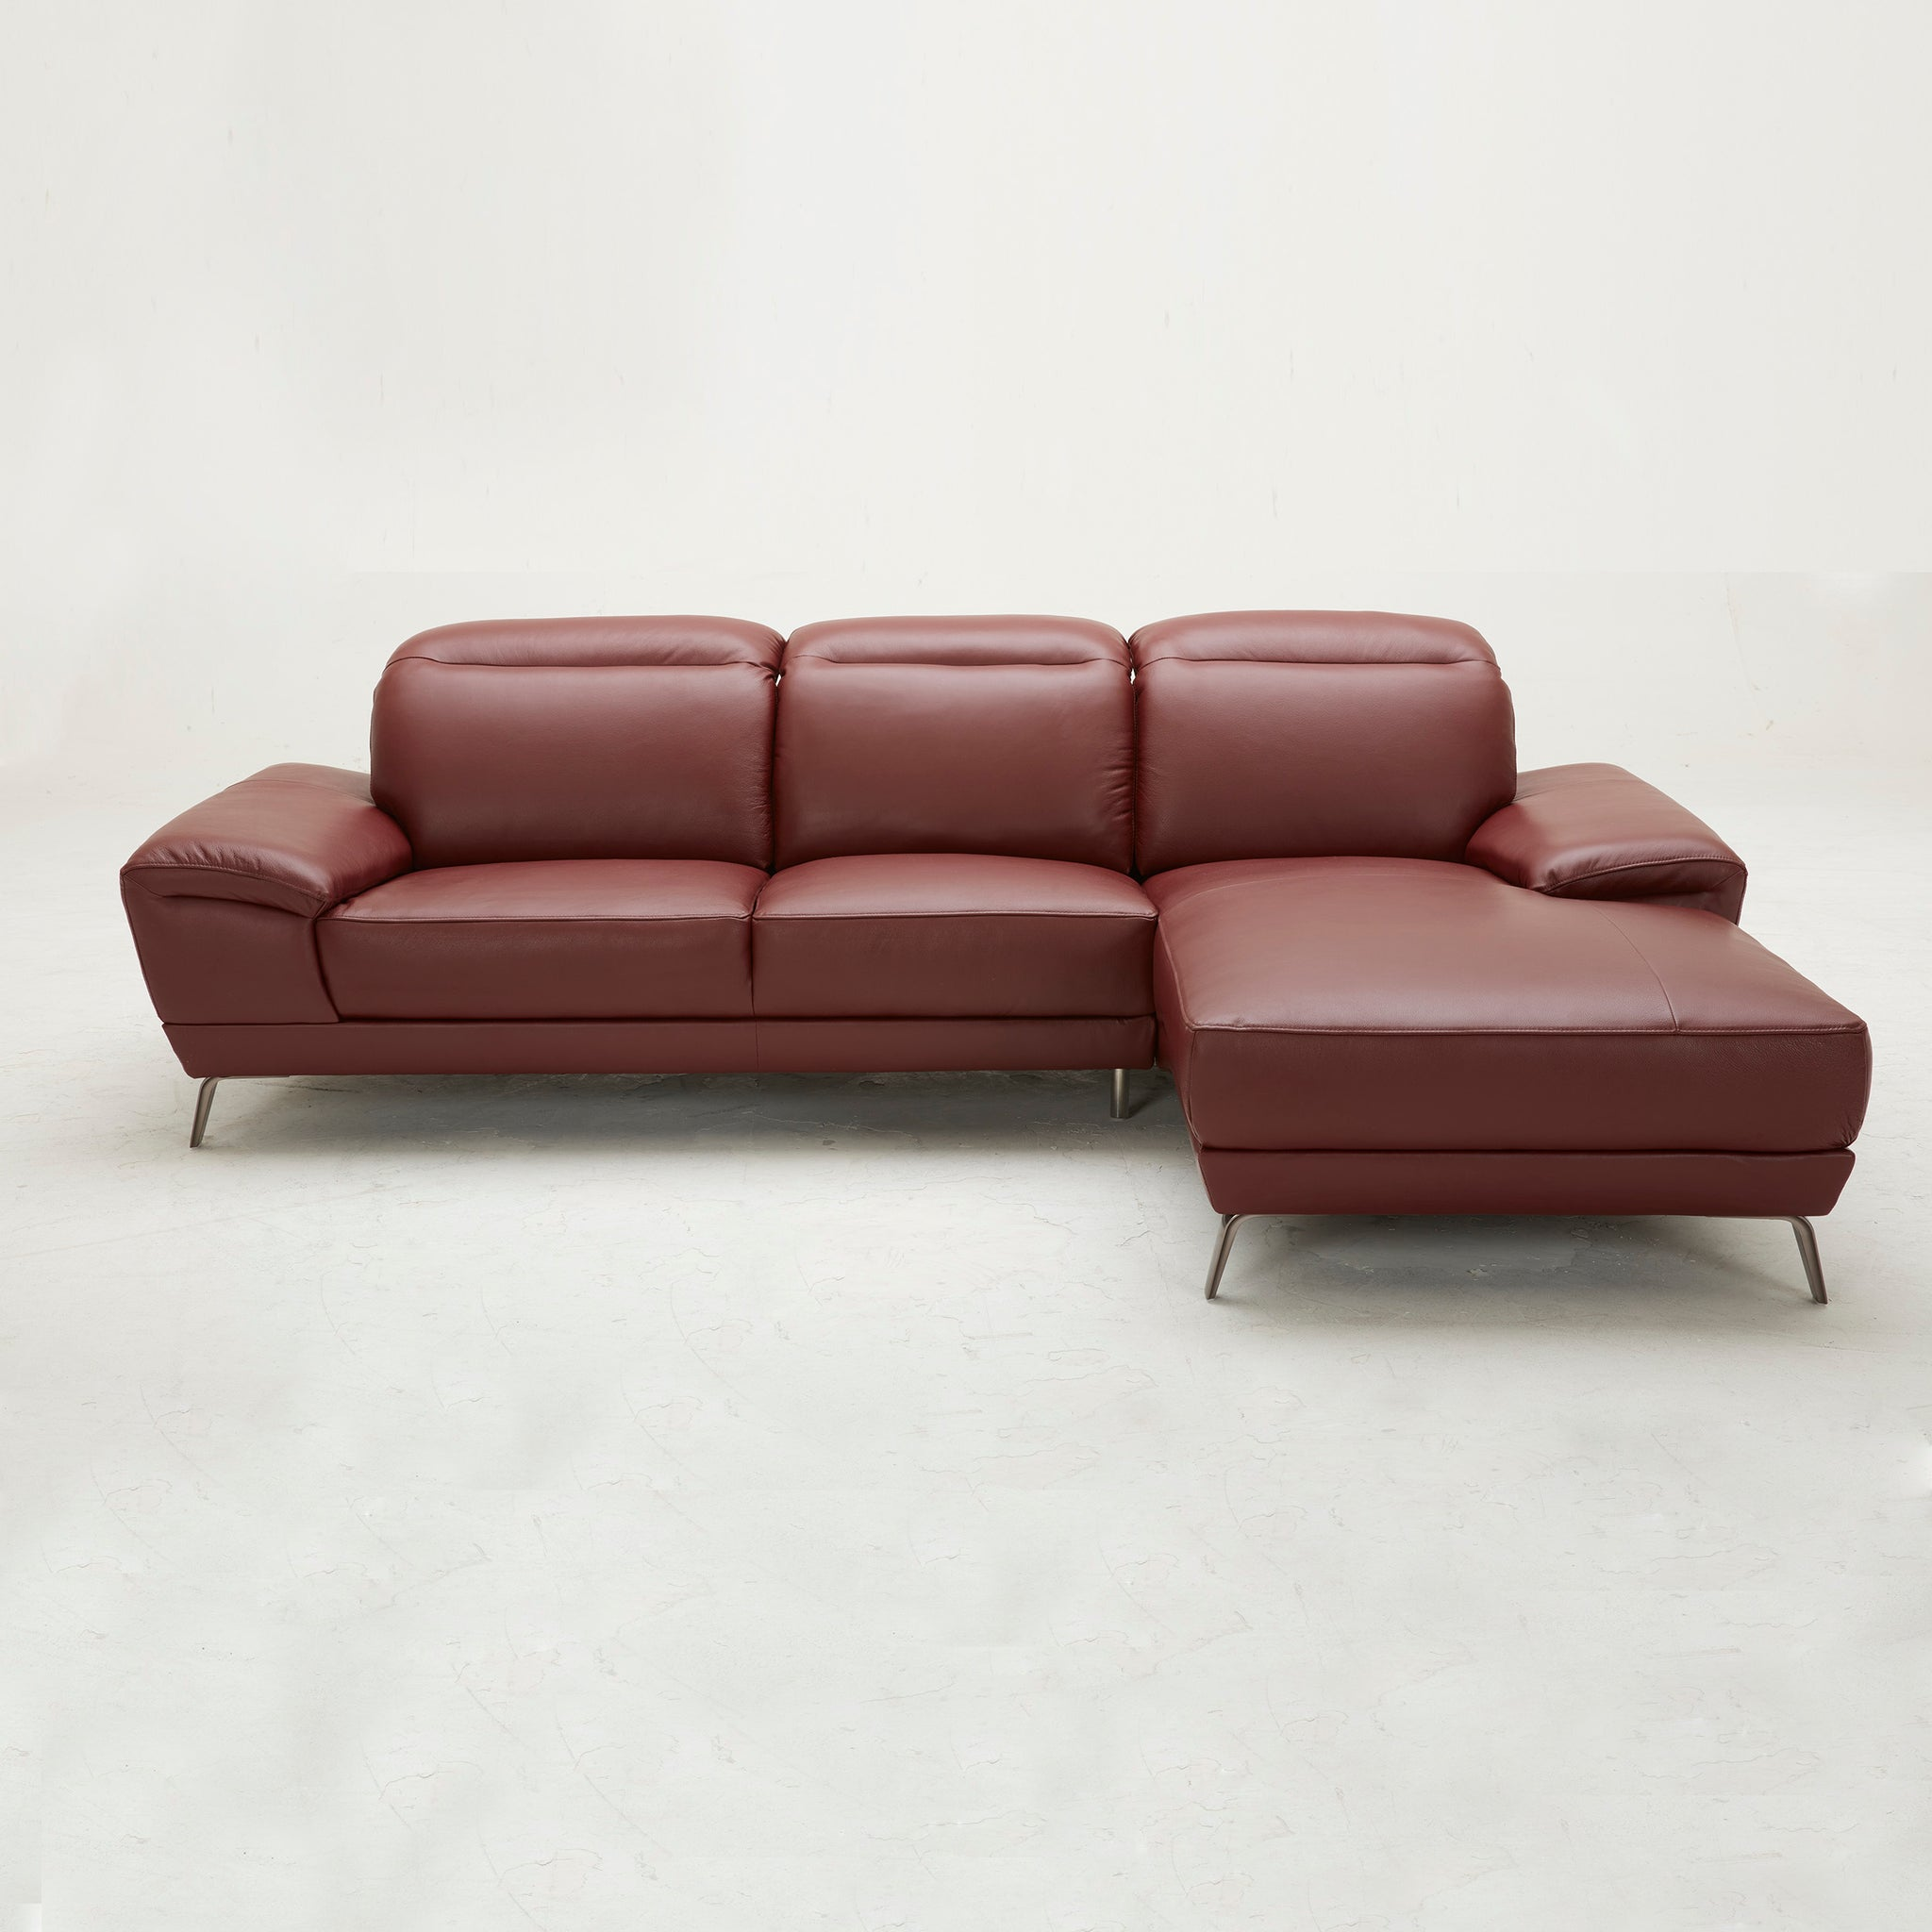 KUKA #5186 Top Grain L-Shaped Leather Sofa (Color: M5660)